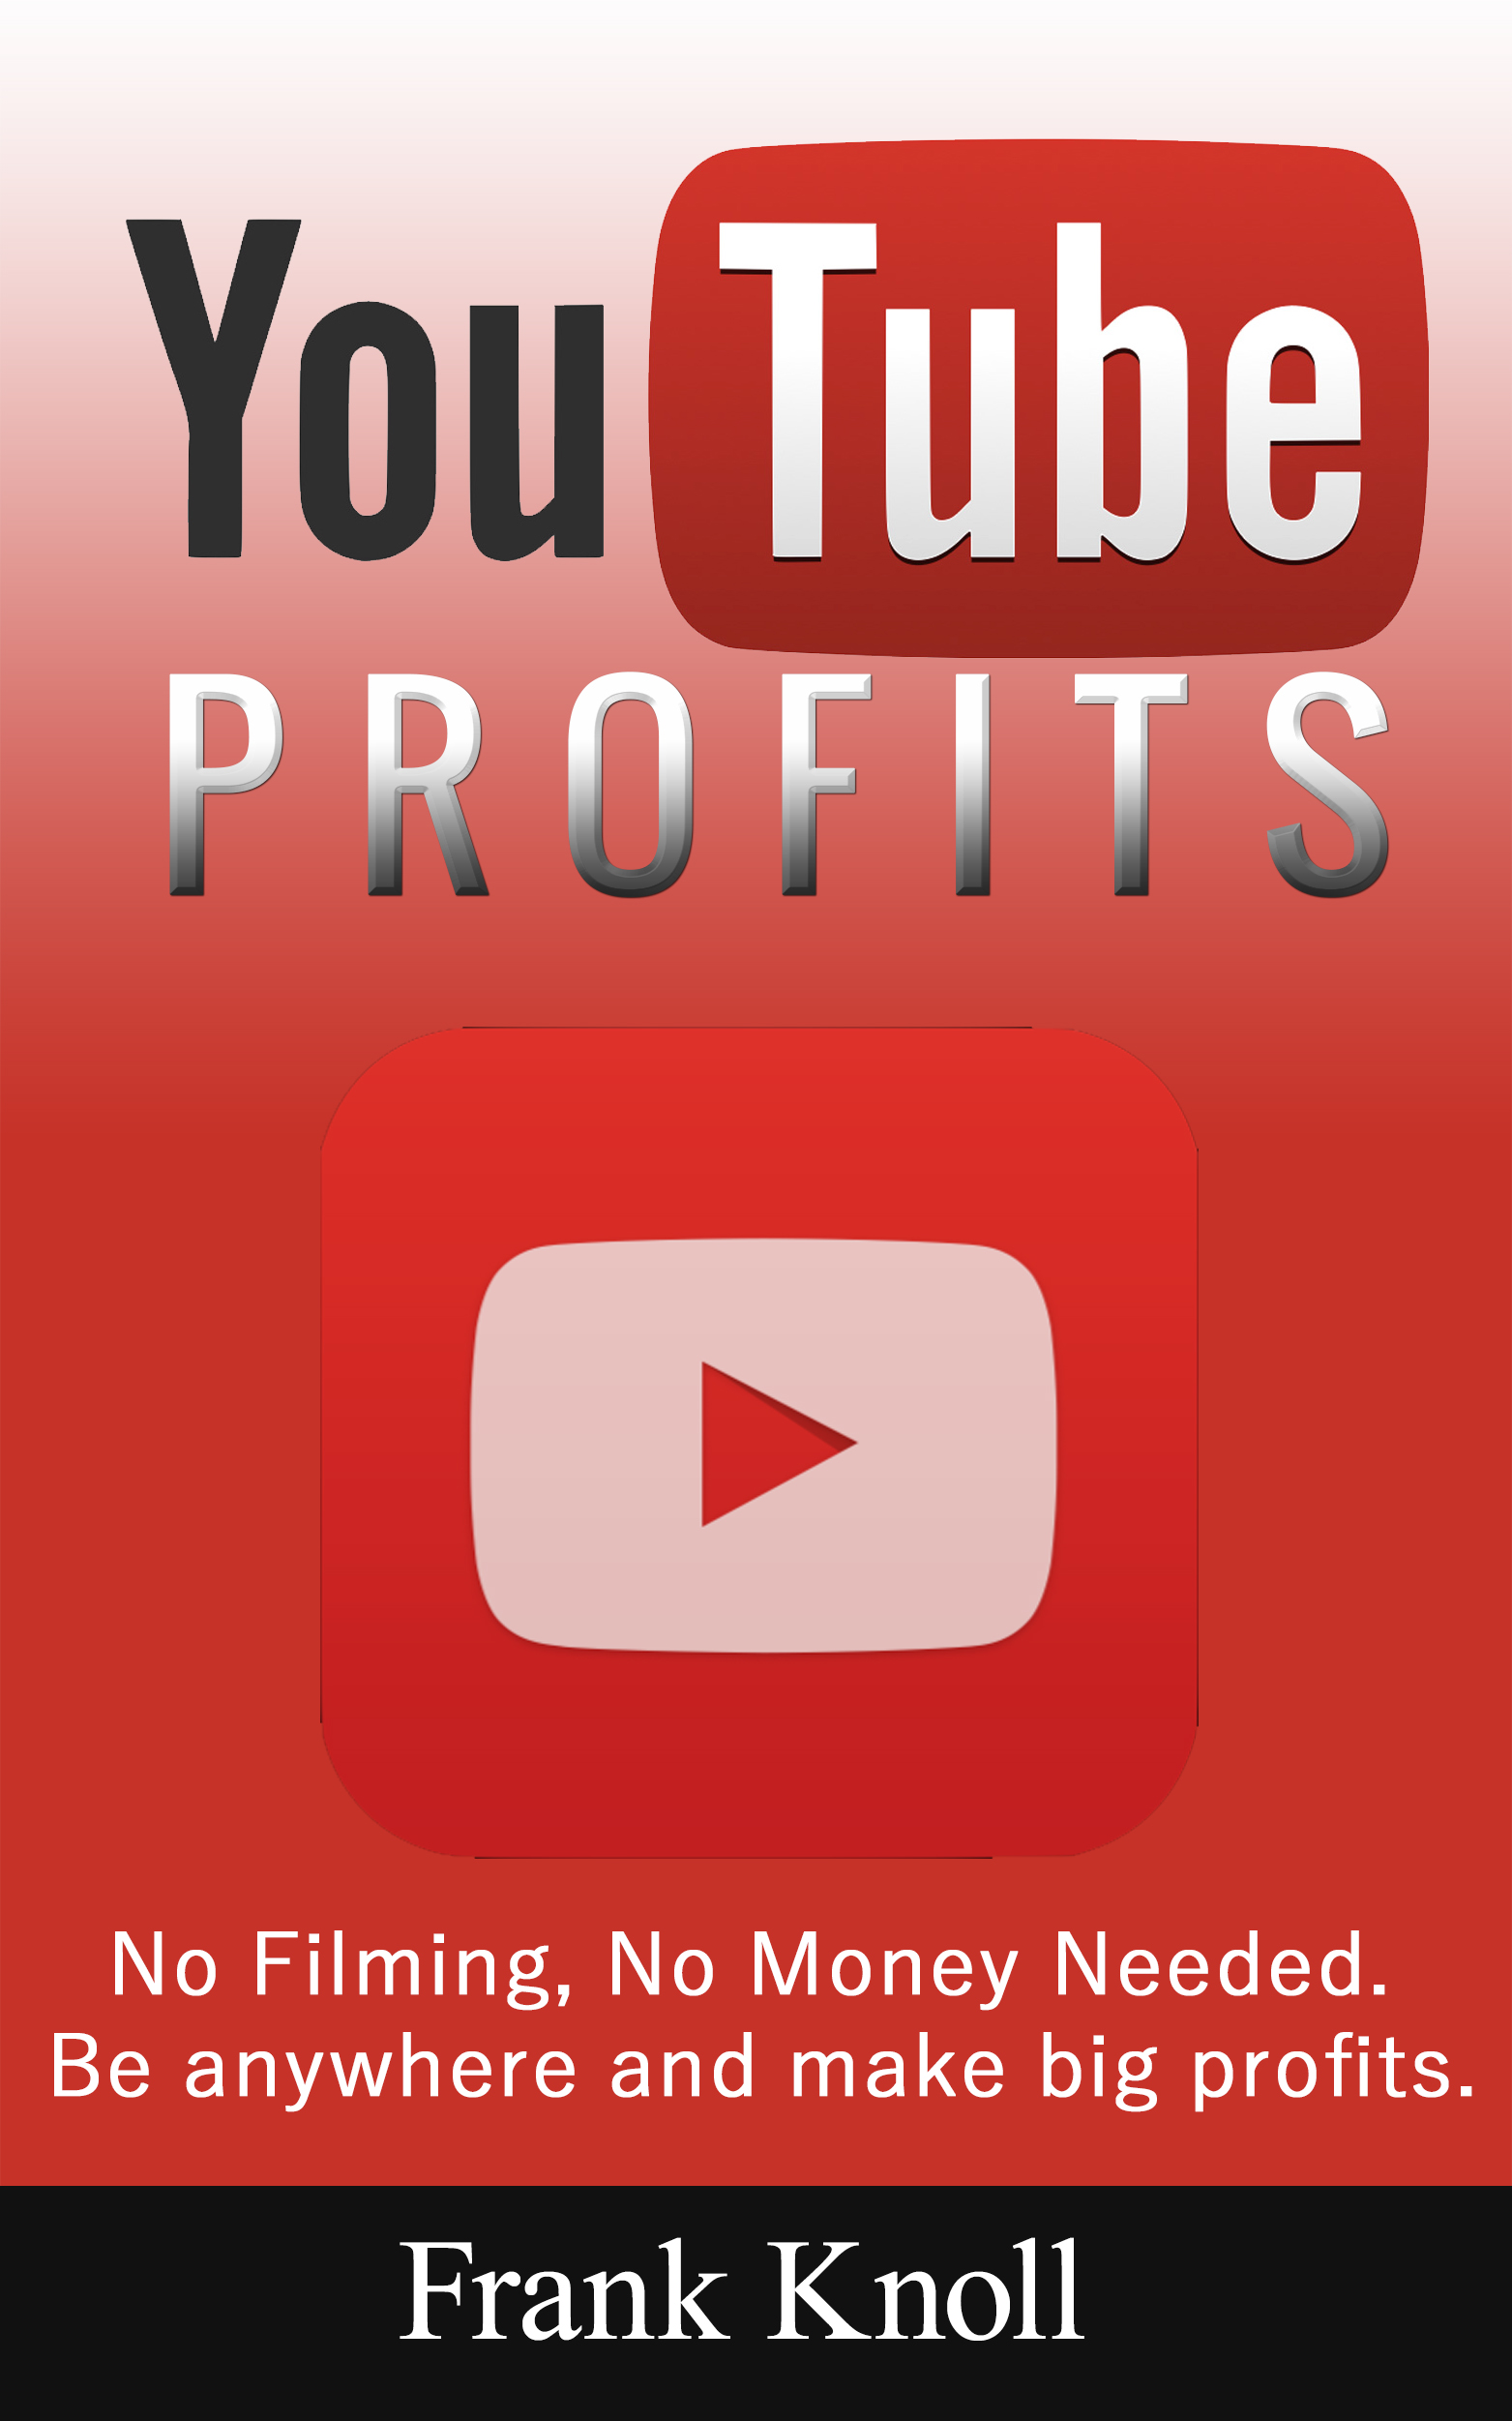 YouTube Profits